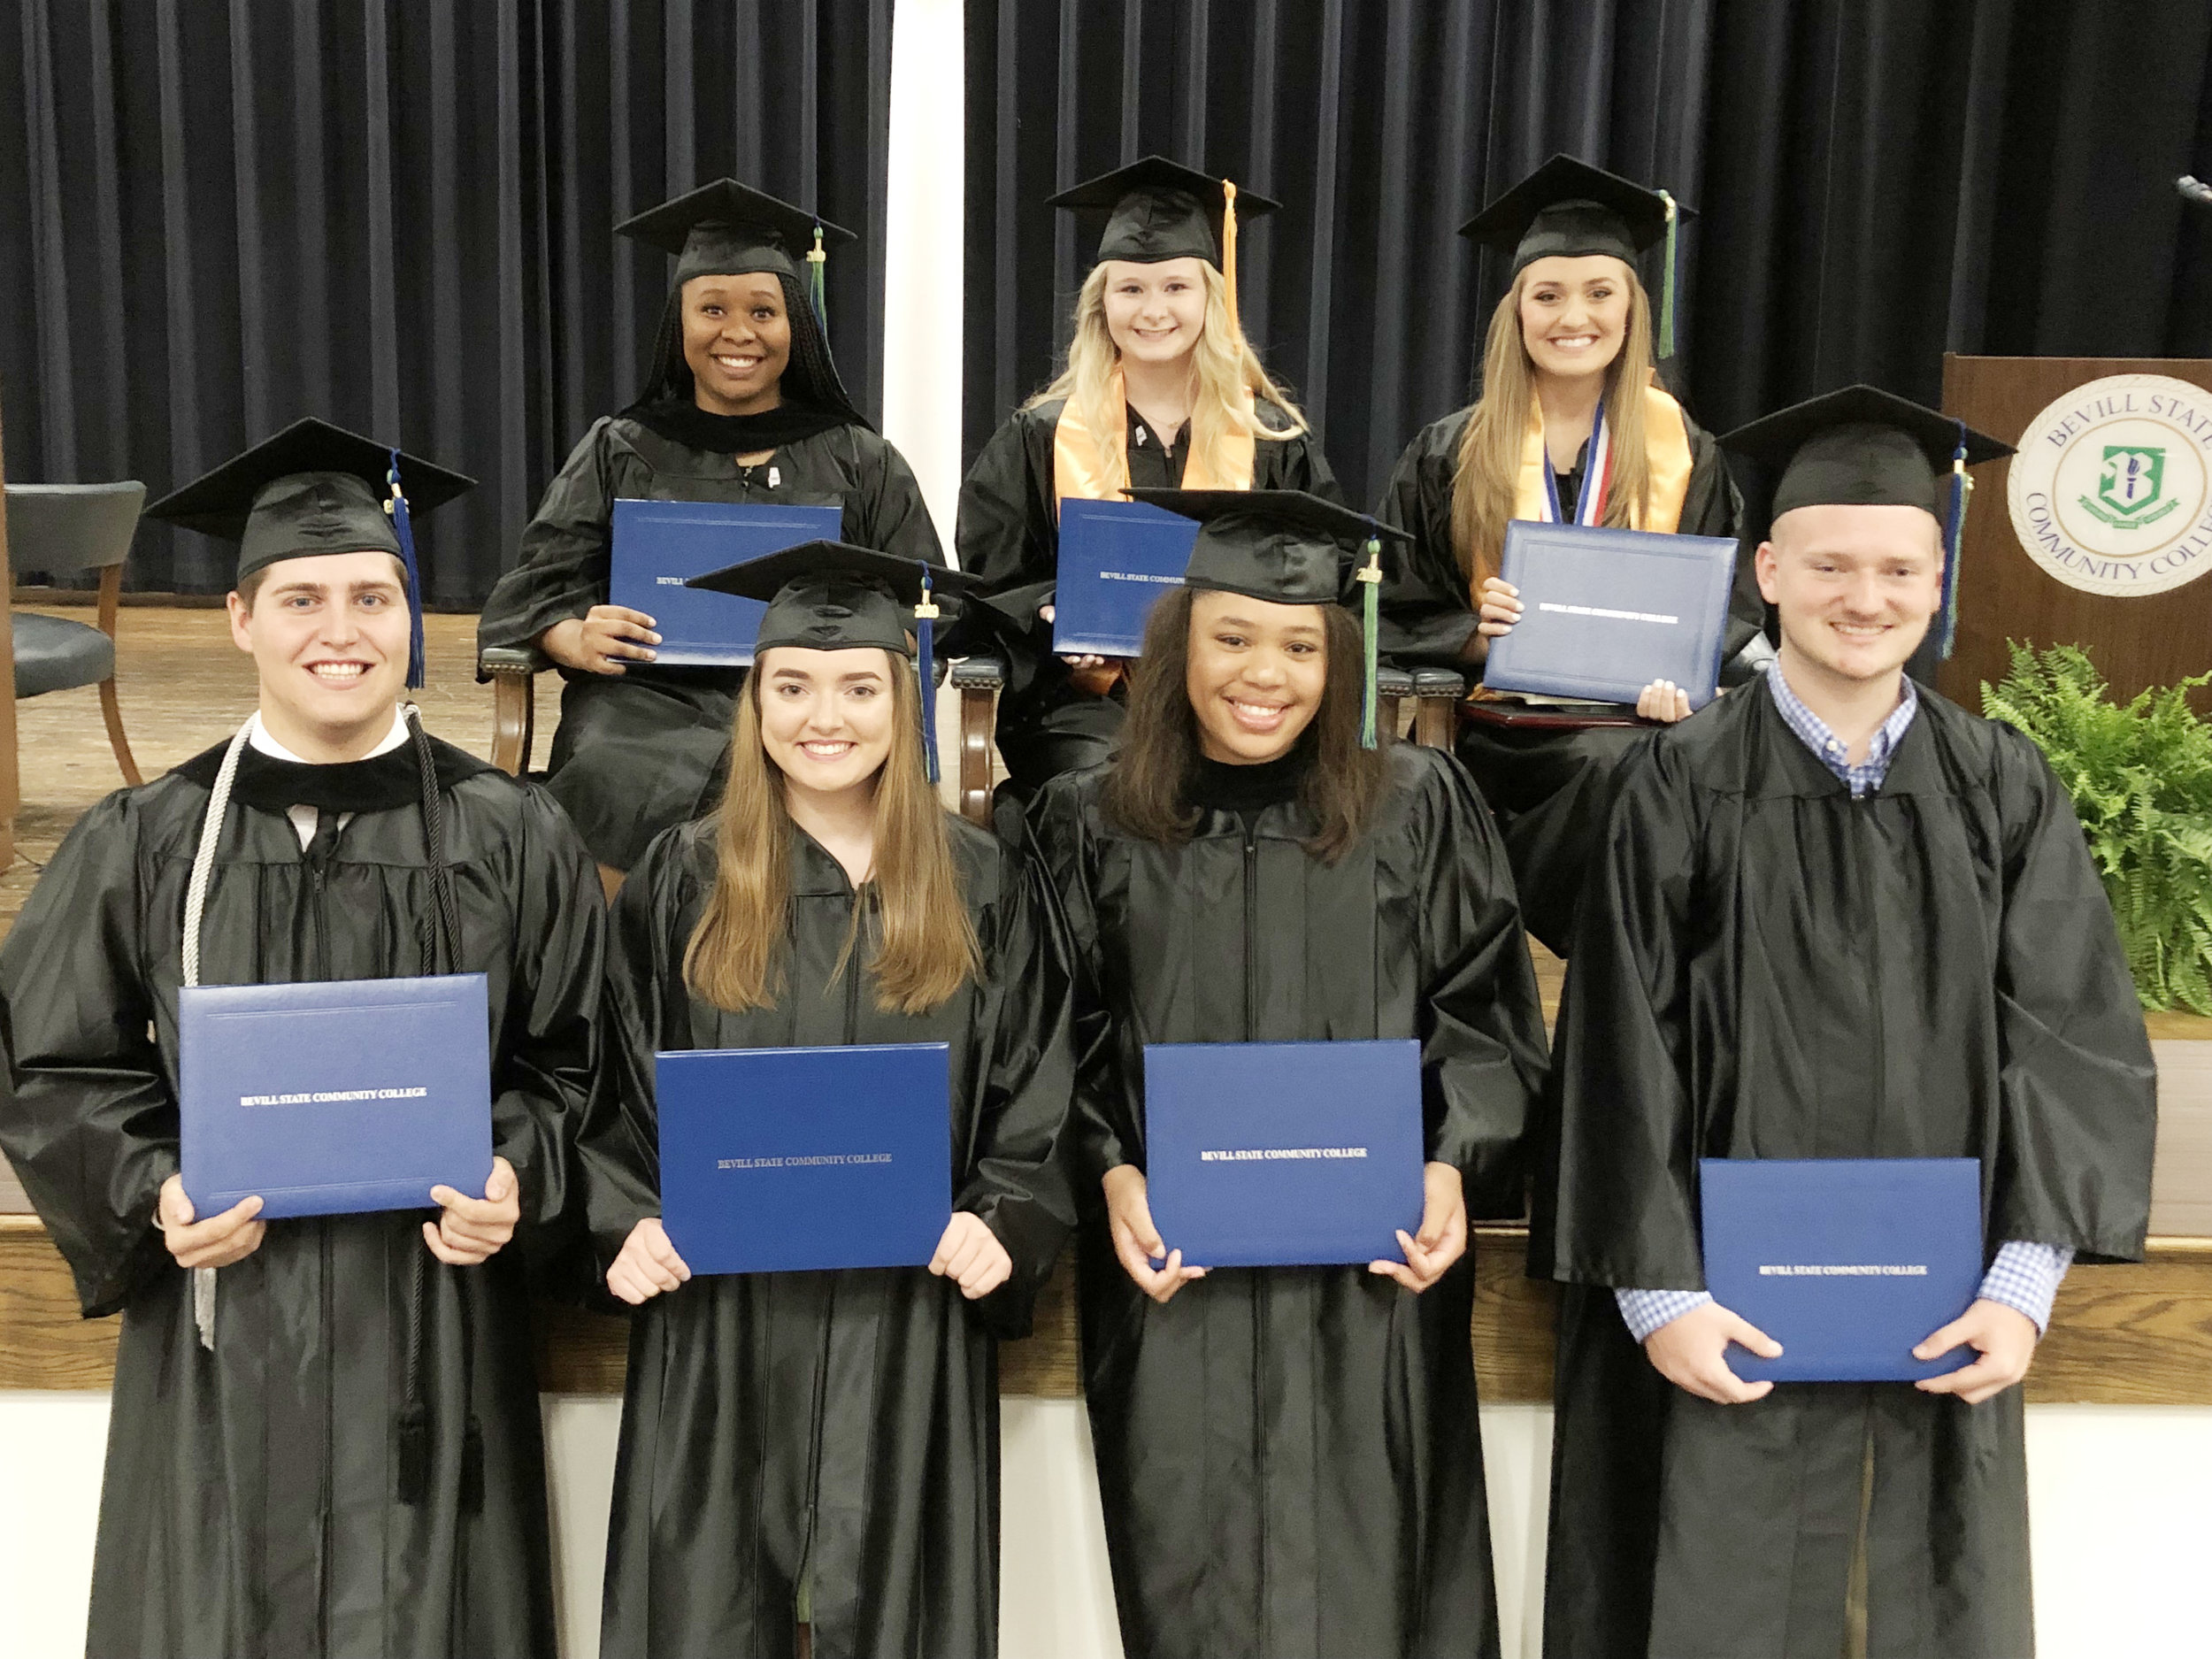 Eight 2019 scholar graduates walked across the stage at Bevill State's commencement ceremony.